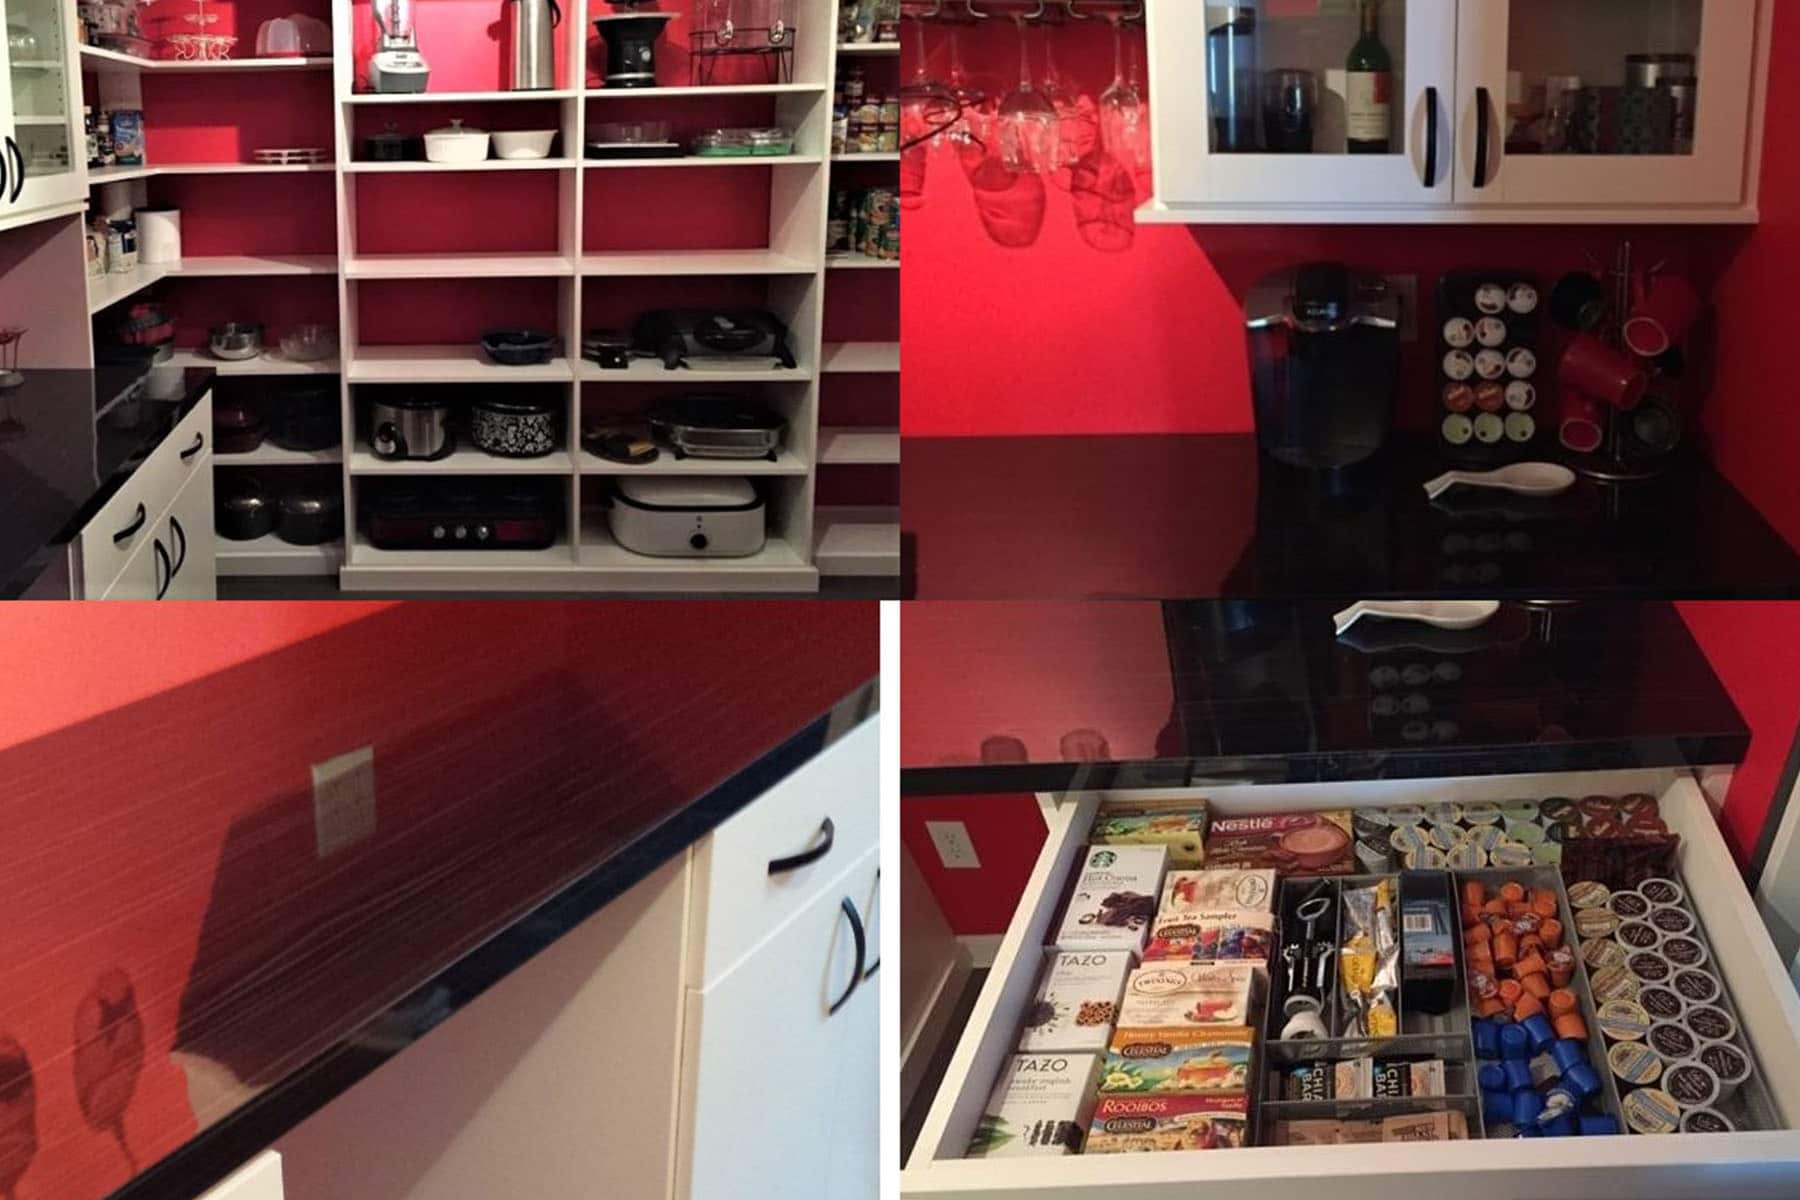 Collage of a red pantry room